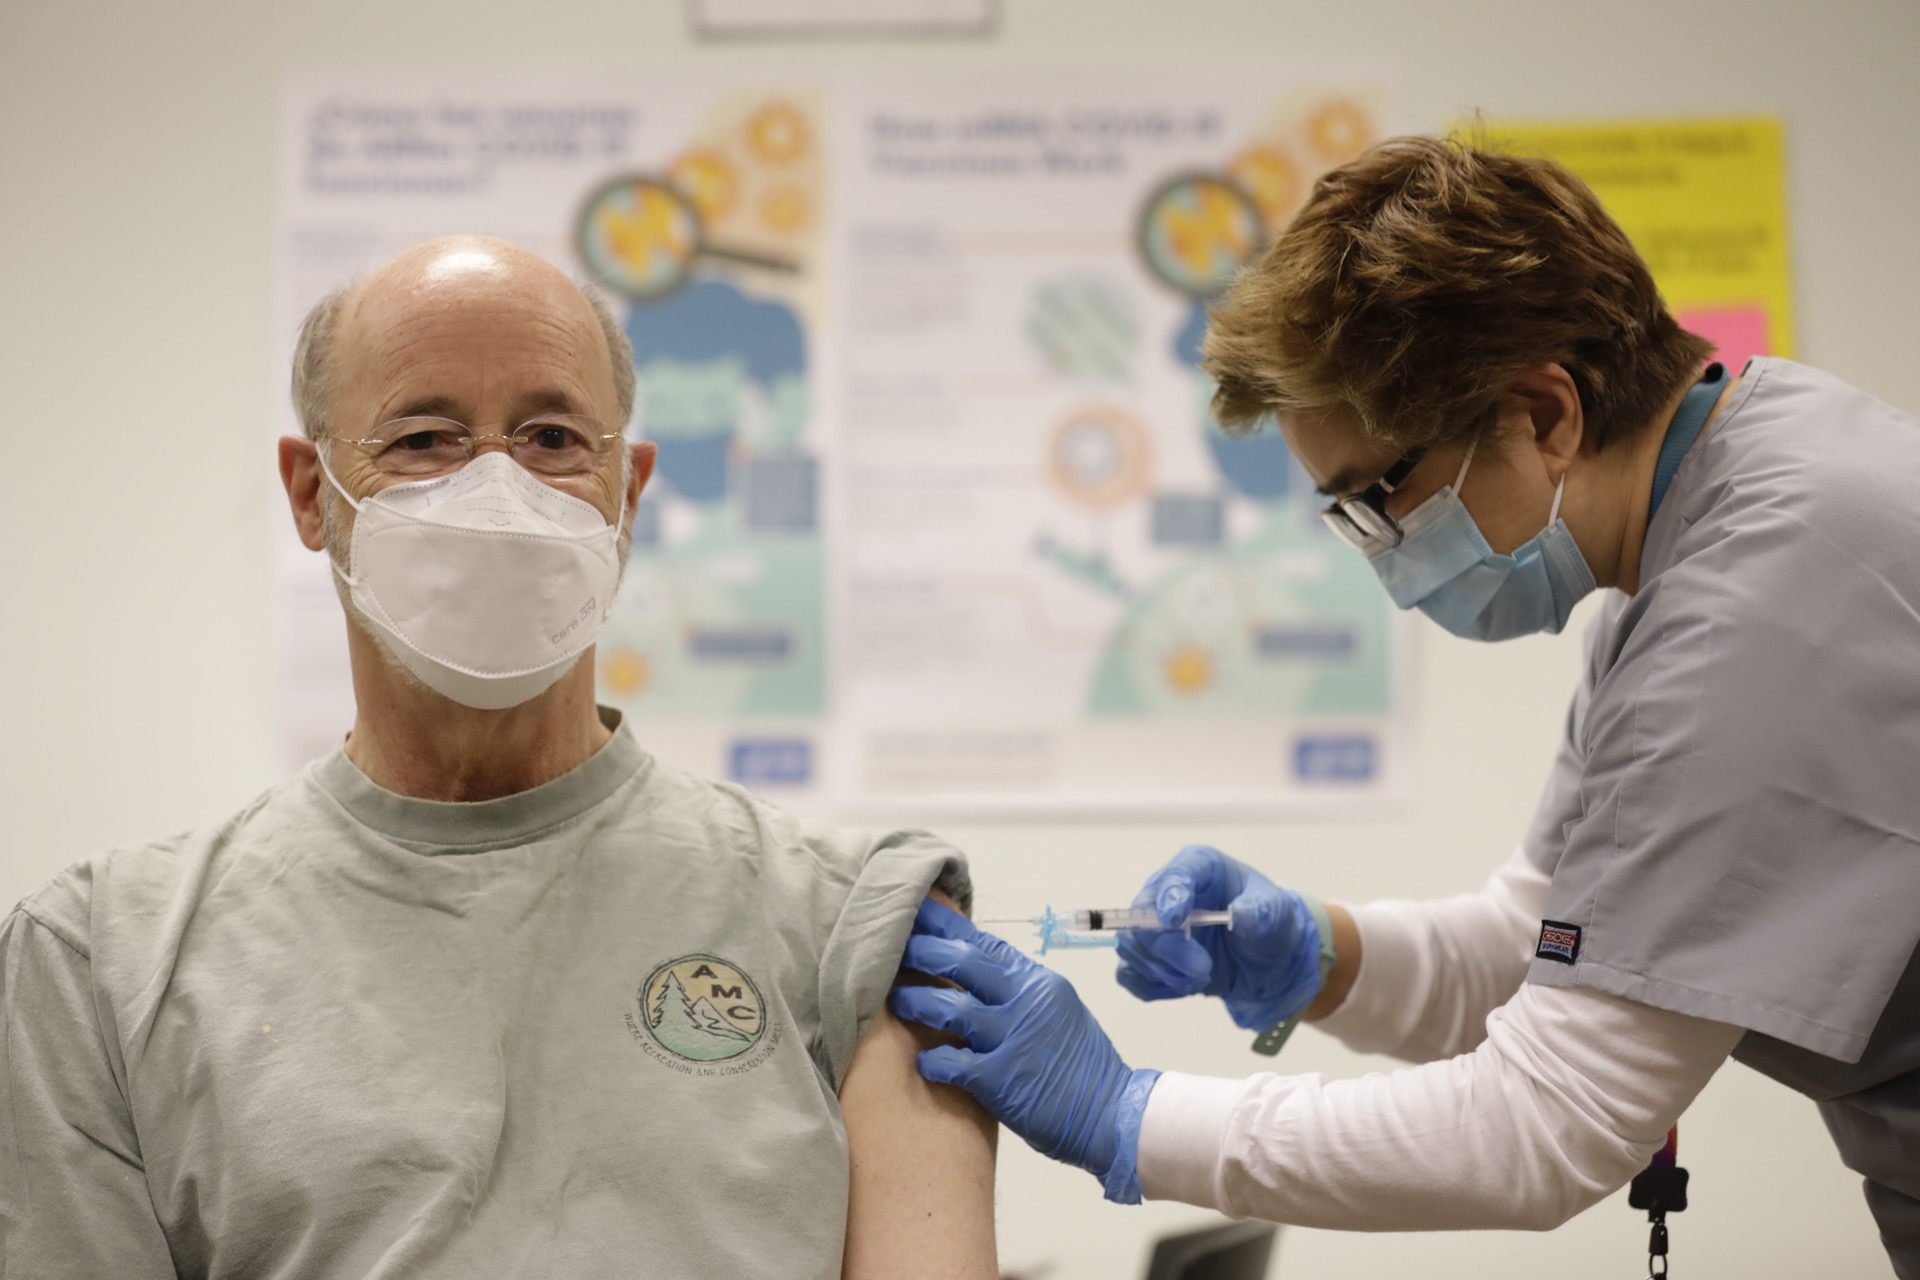 Dr. Asceline Go administers the second dose of the Moderna vaccine to Gov. Tom Wolf on Monday, May 17, 2021, at Family First Health in York. (Source: Pa.gov)